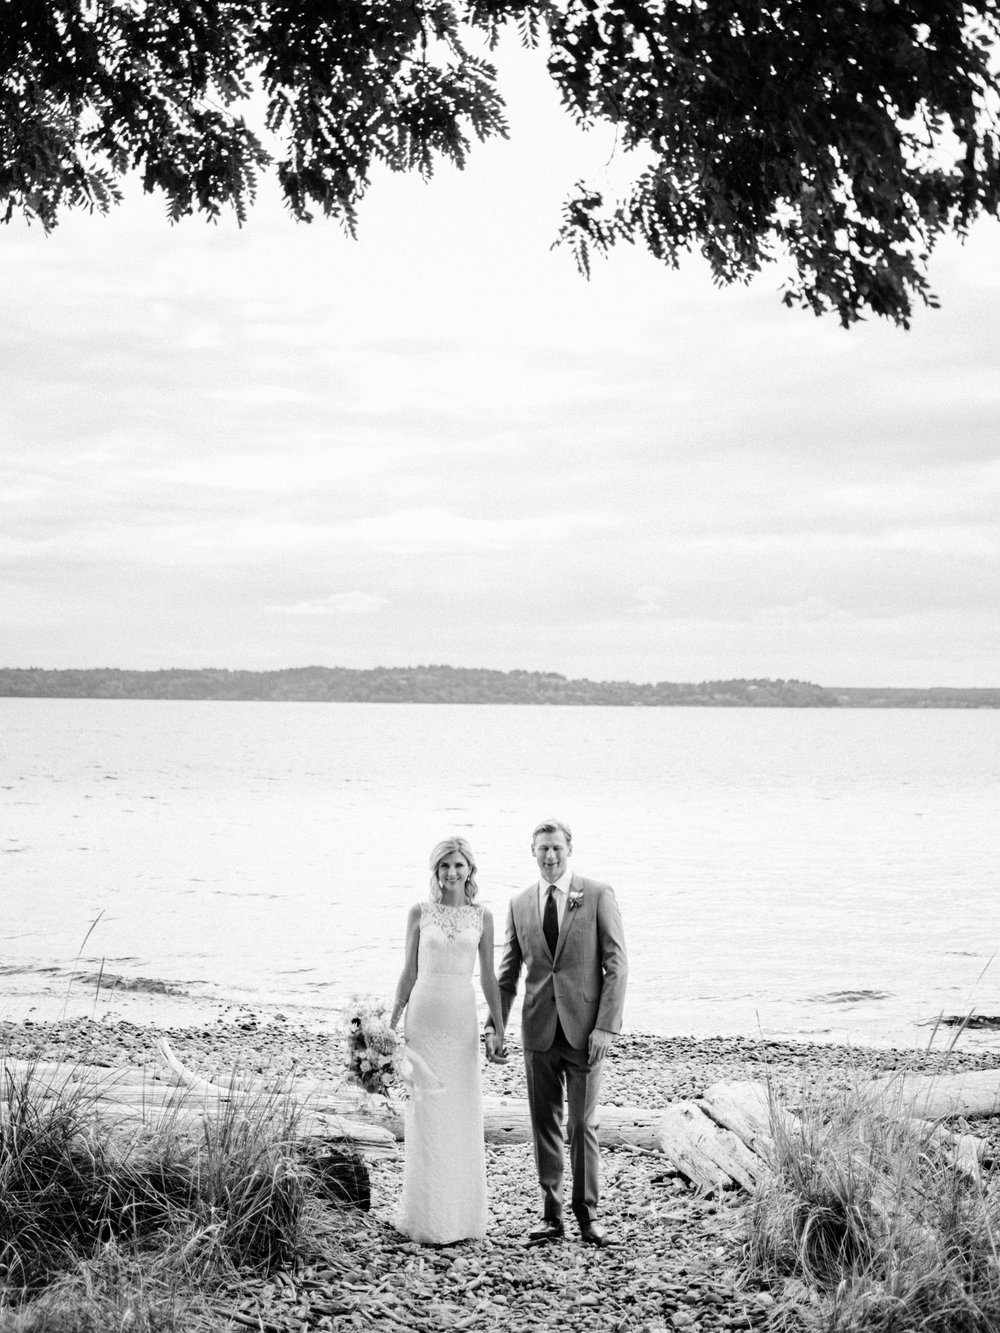 184-wedding-couple-walking-on-driftwood-holding-flowers-by-floret-floral.jpg